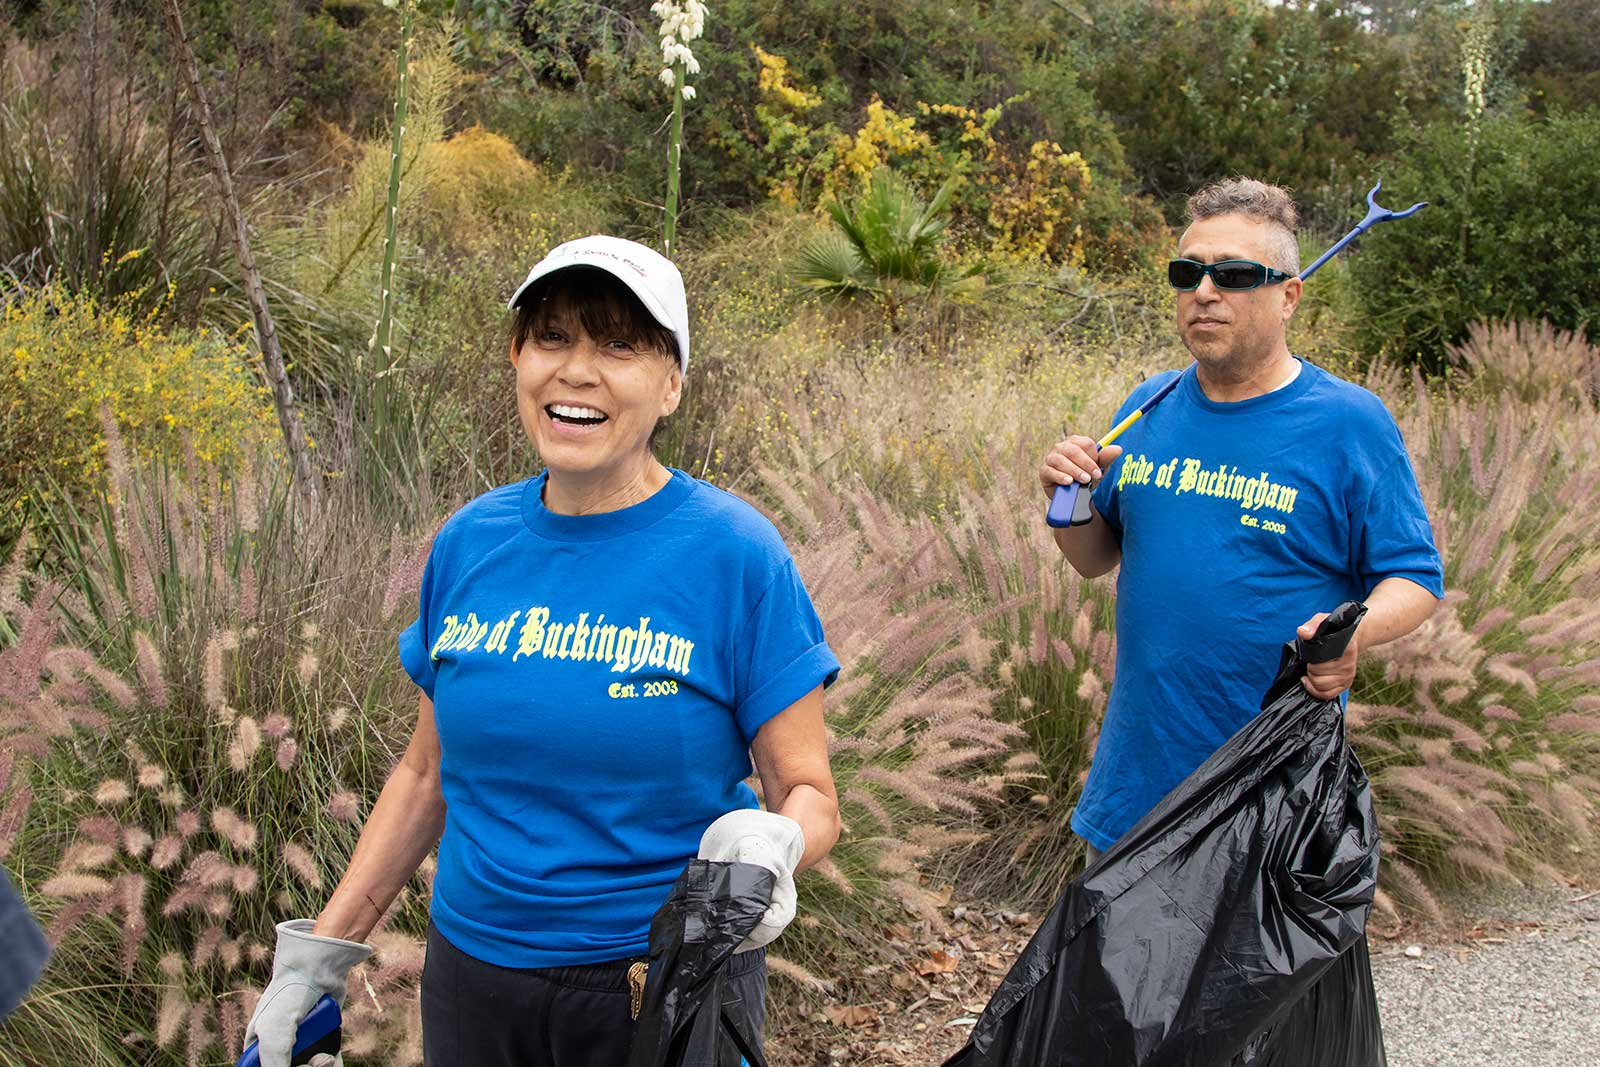 Pride of Buckingham volunteer street cleanup in Glendale, CA